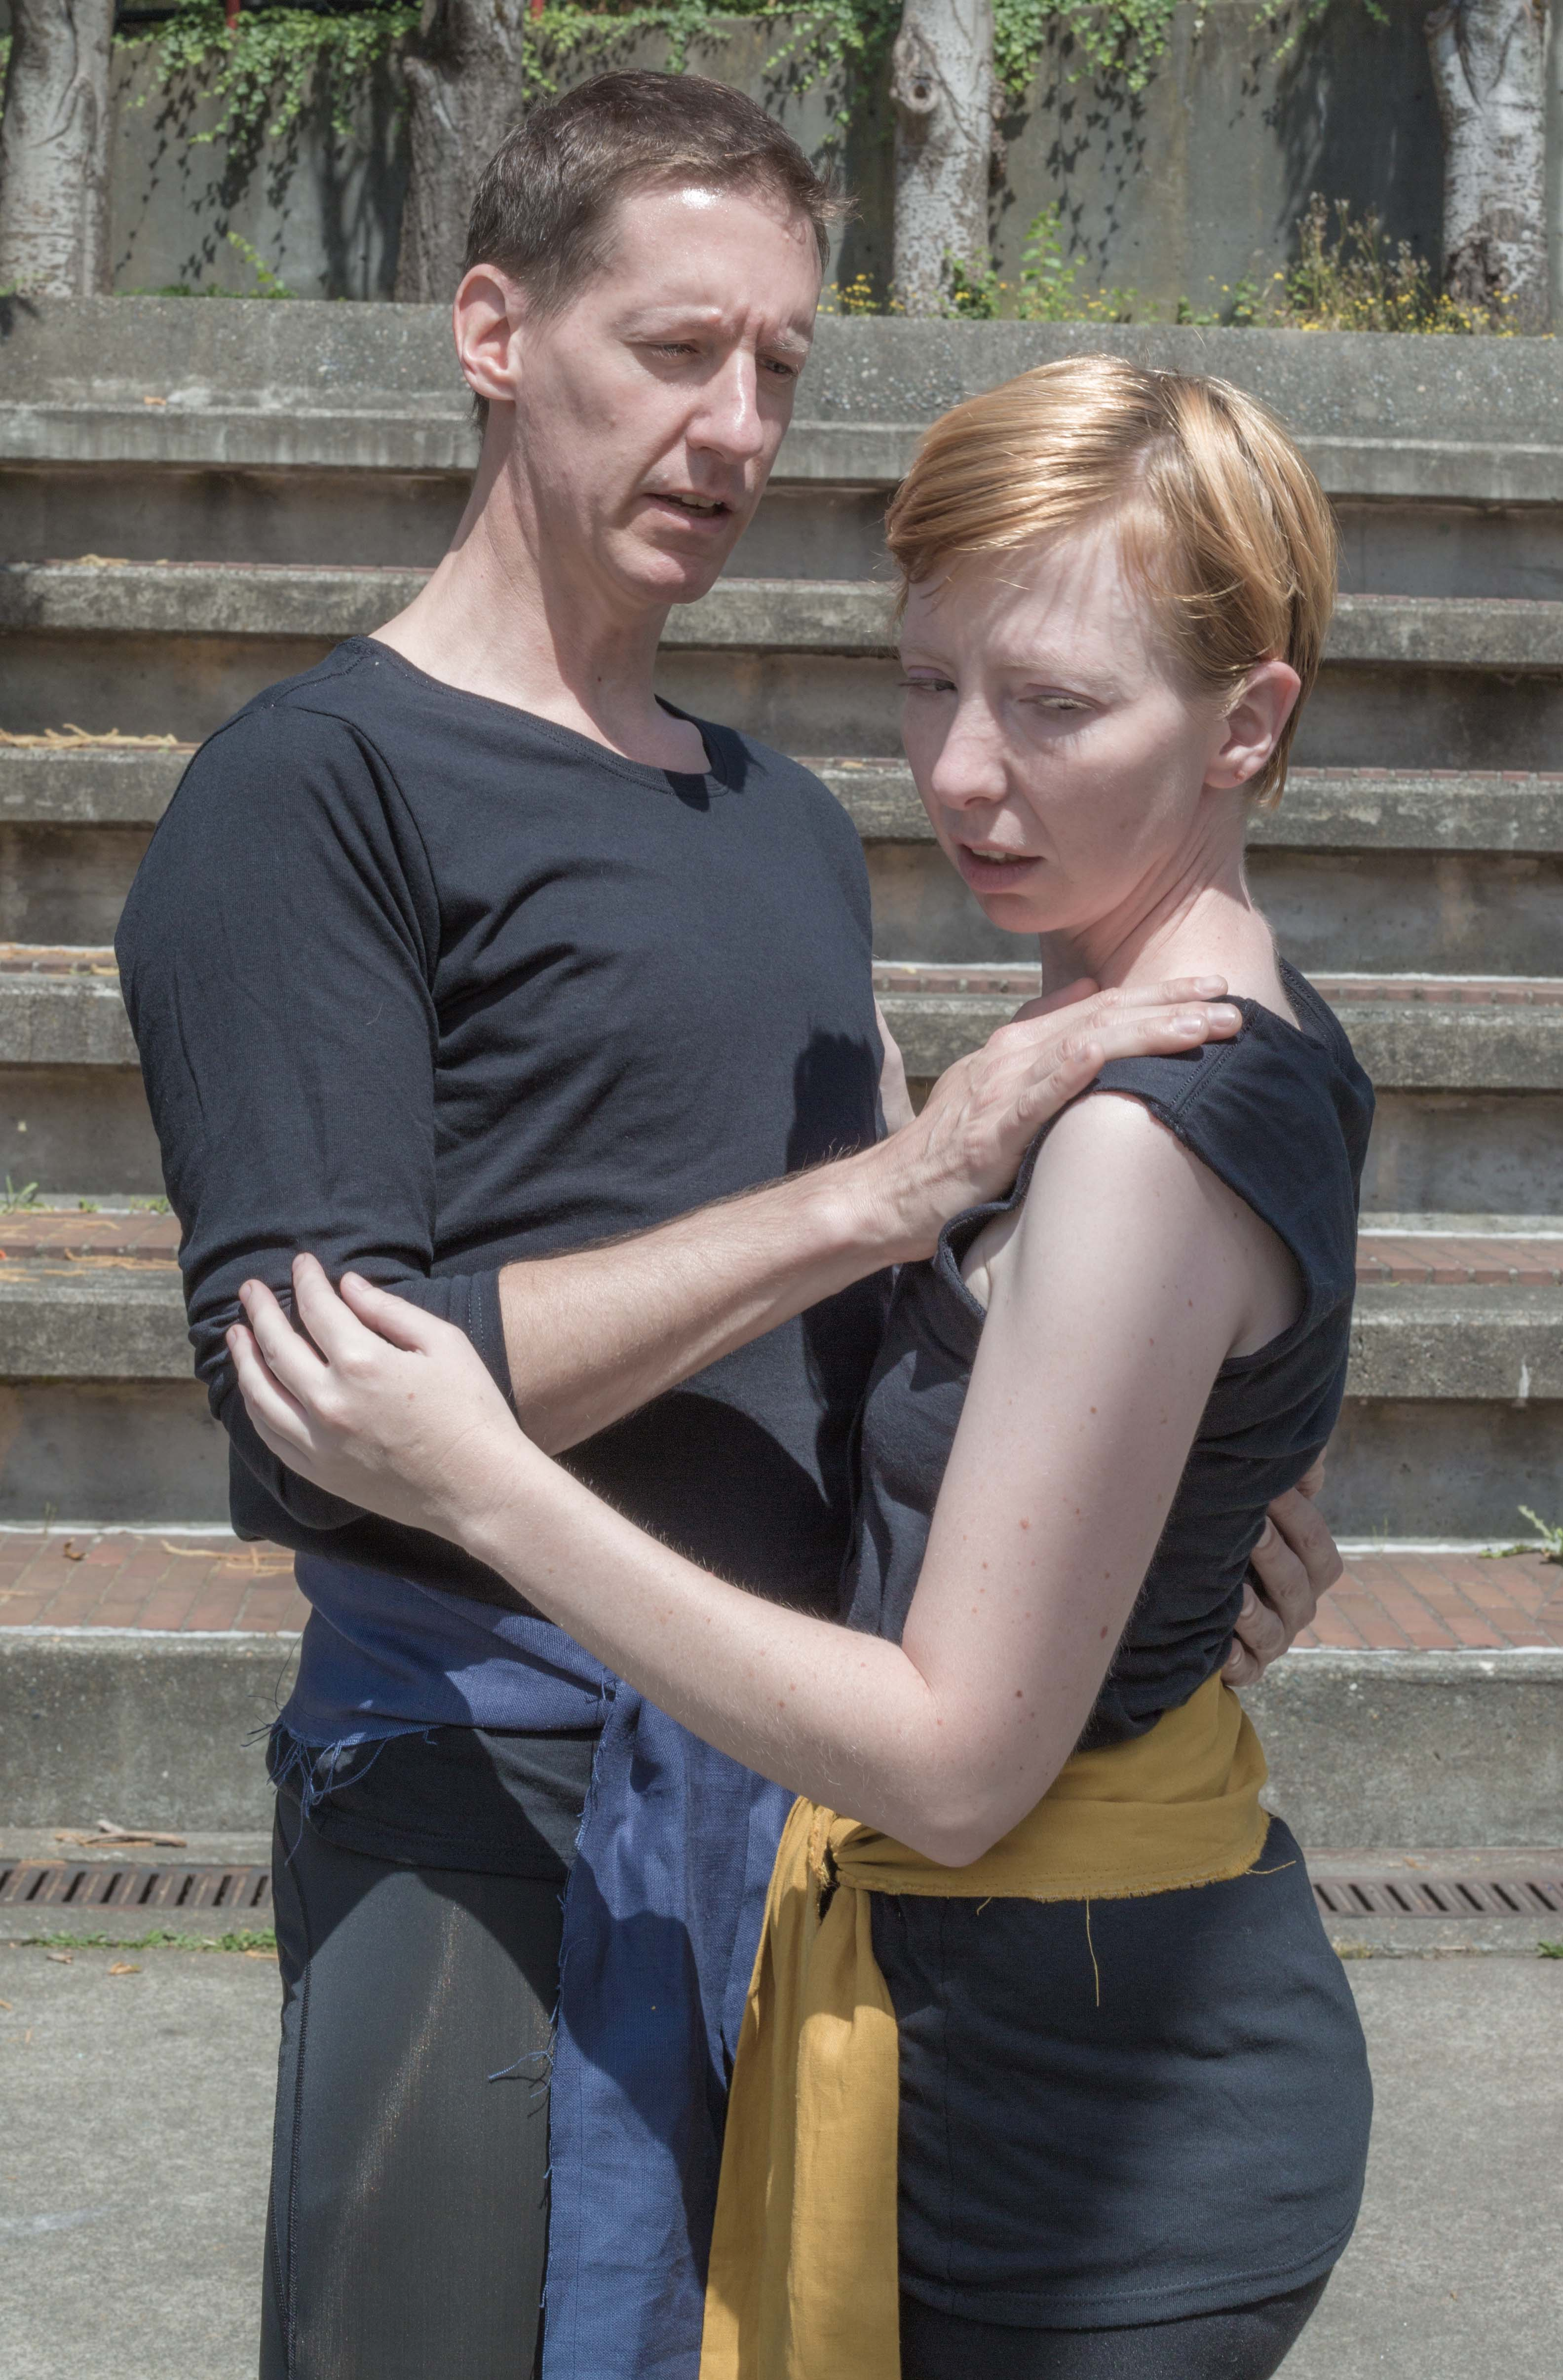 Color photograph of a taller man and a shorter woman, both wearing black, standing outside in a semiembrace, with the woman looking away and down. The woman is wearing a yellow sash to indicate the rank of captain.